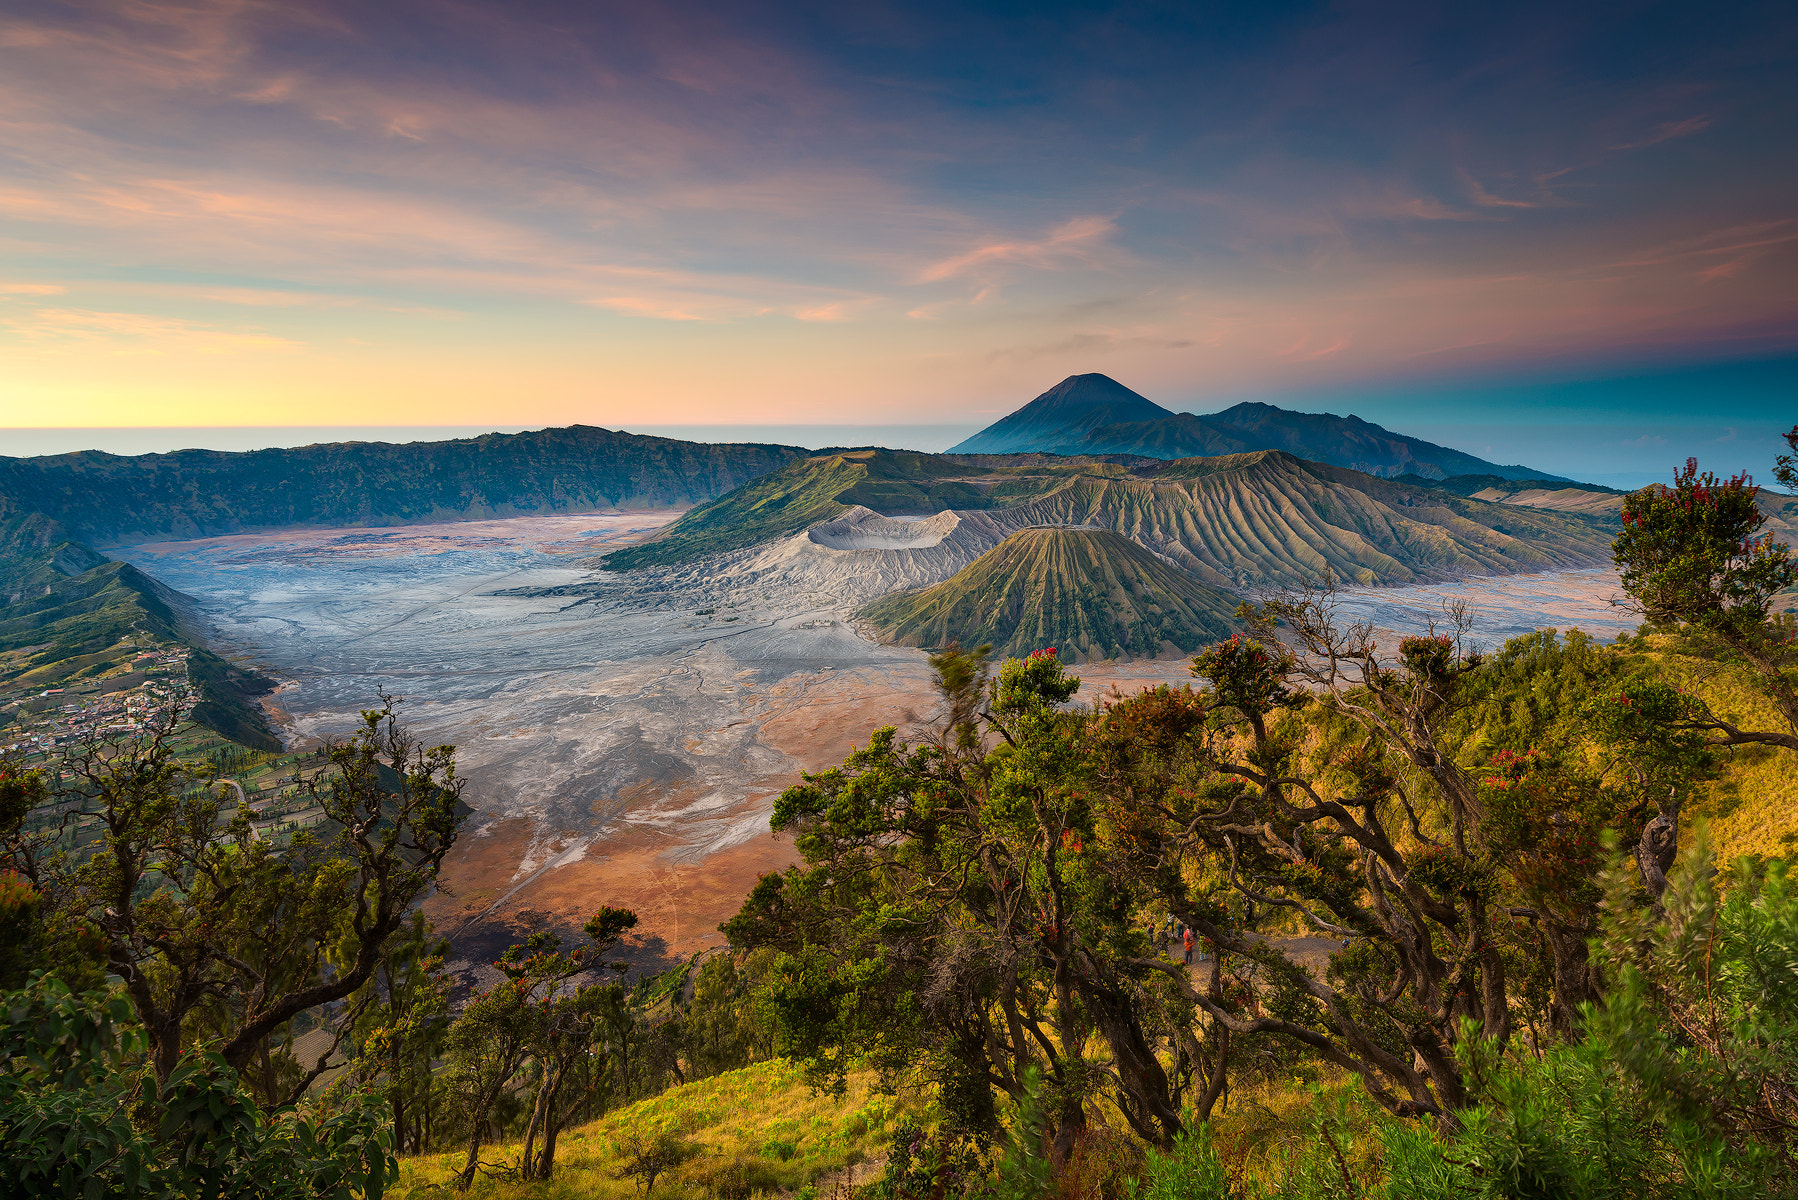 Photograph The Essence of Mt Bromo by Danny Xeero on 500px